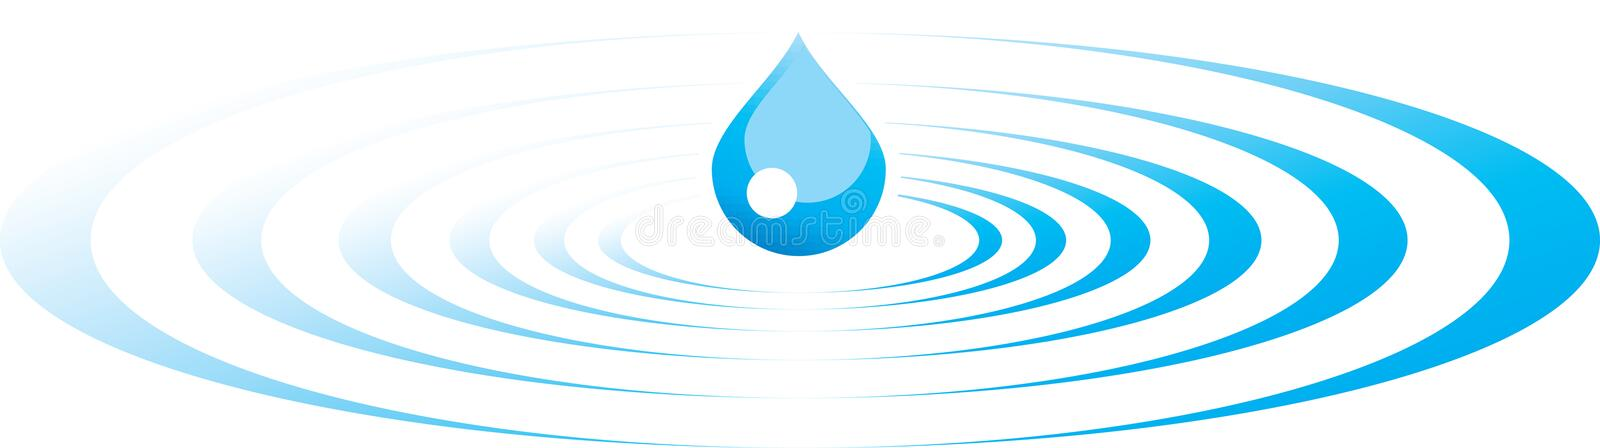 Download Drop and ripples stock vector. Image of dripping, illustrated - 5701866